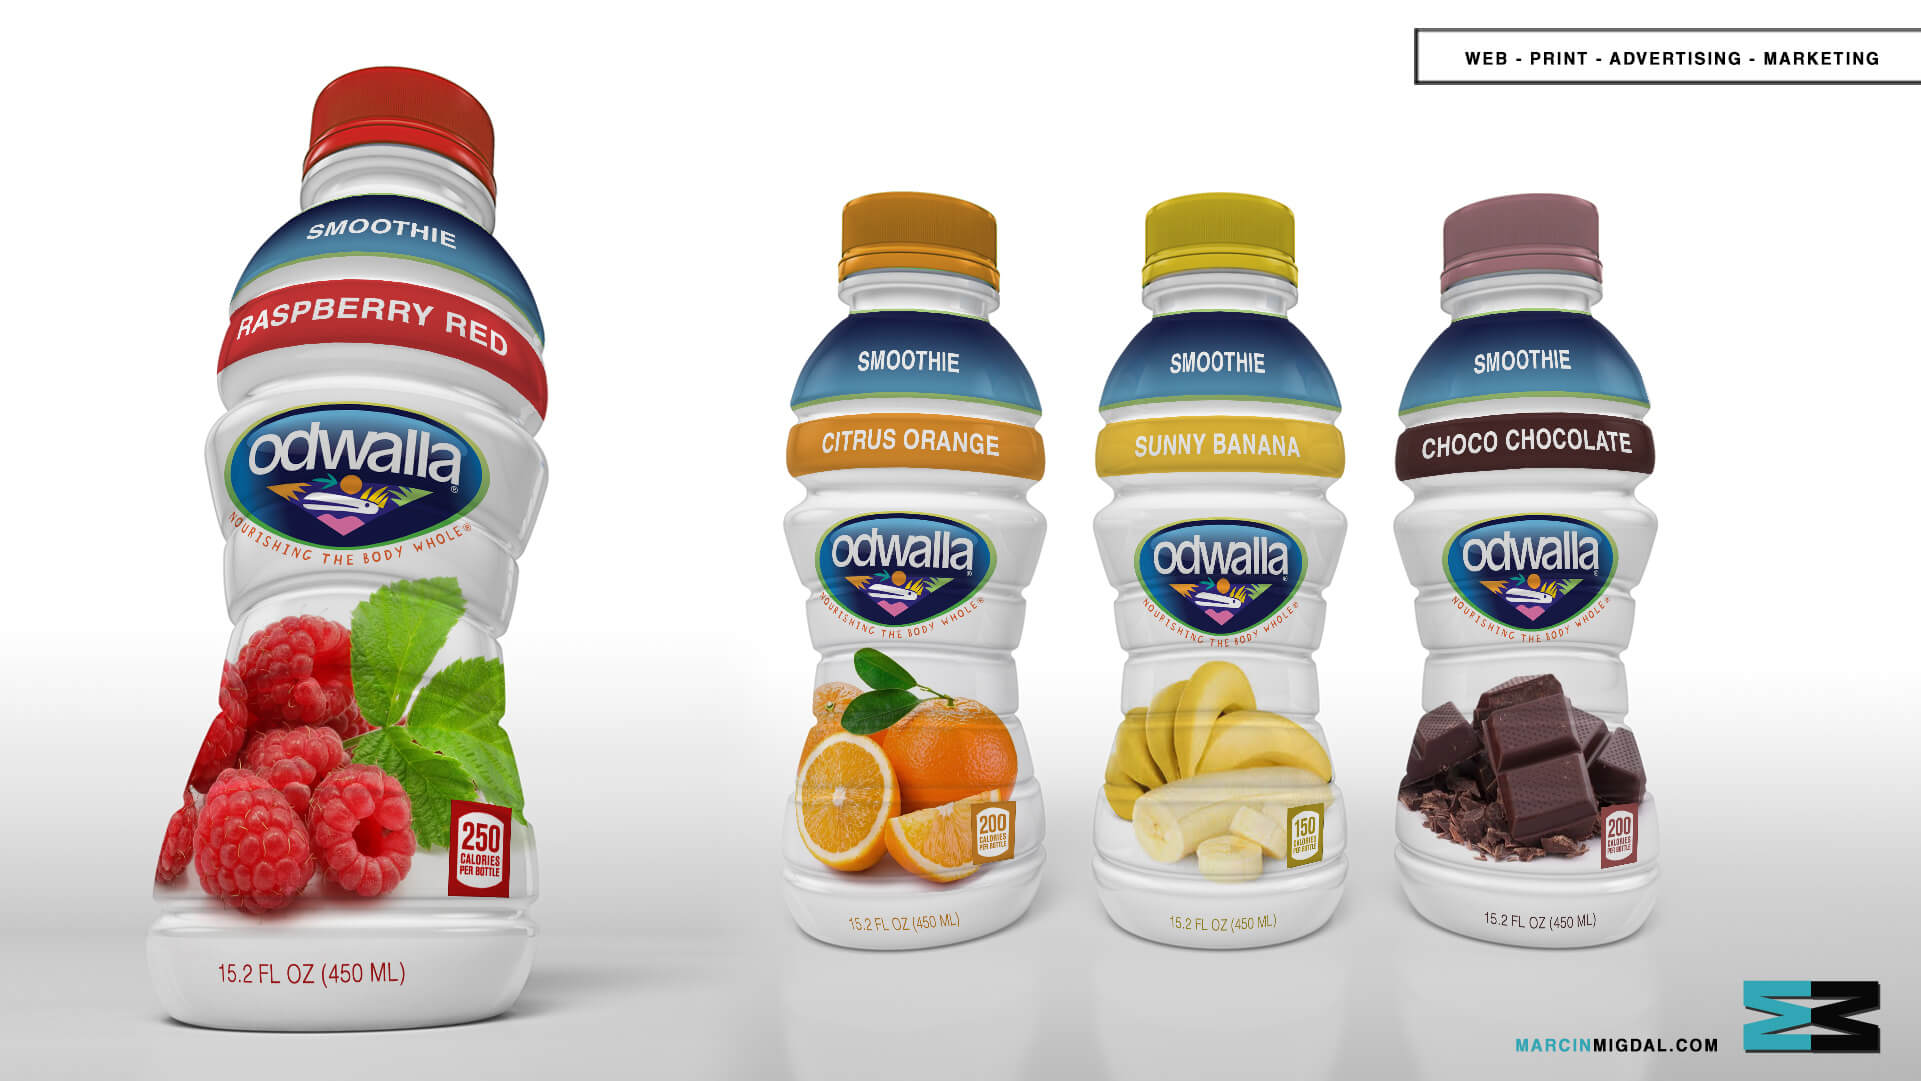 Odwalla - Beverage Packaging Design by Marcin Migdal